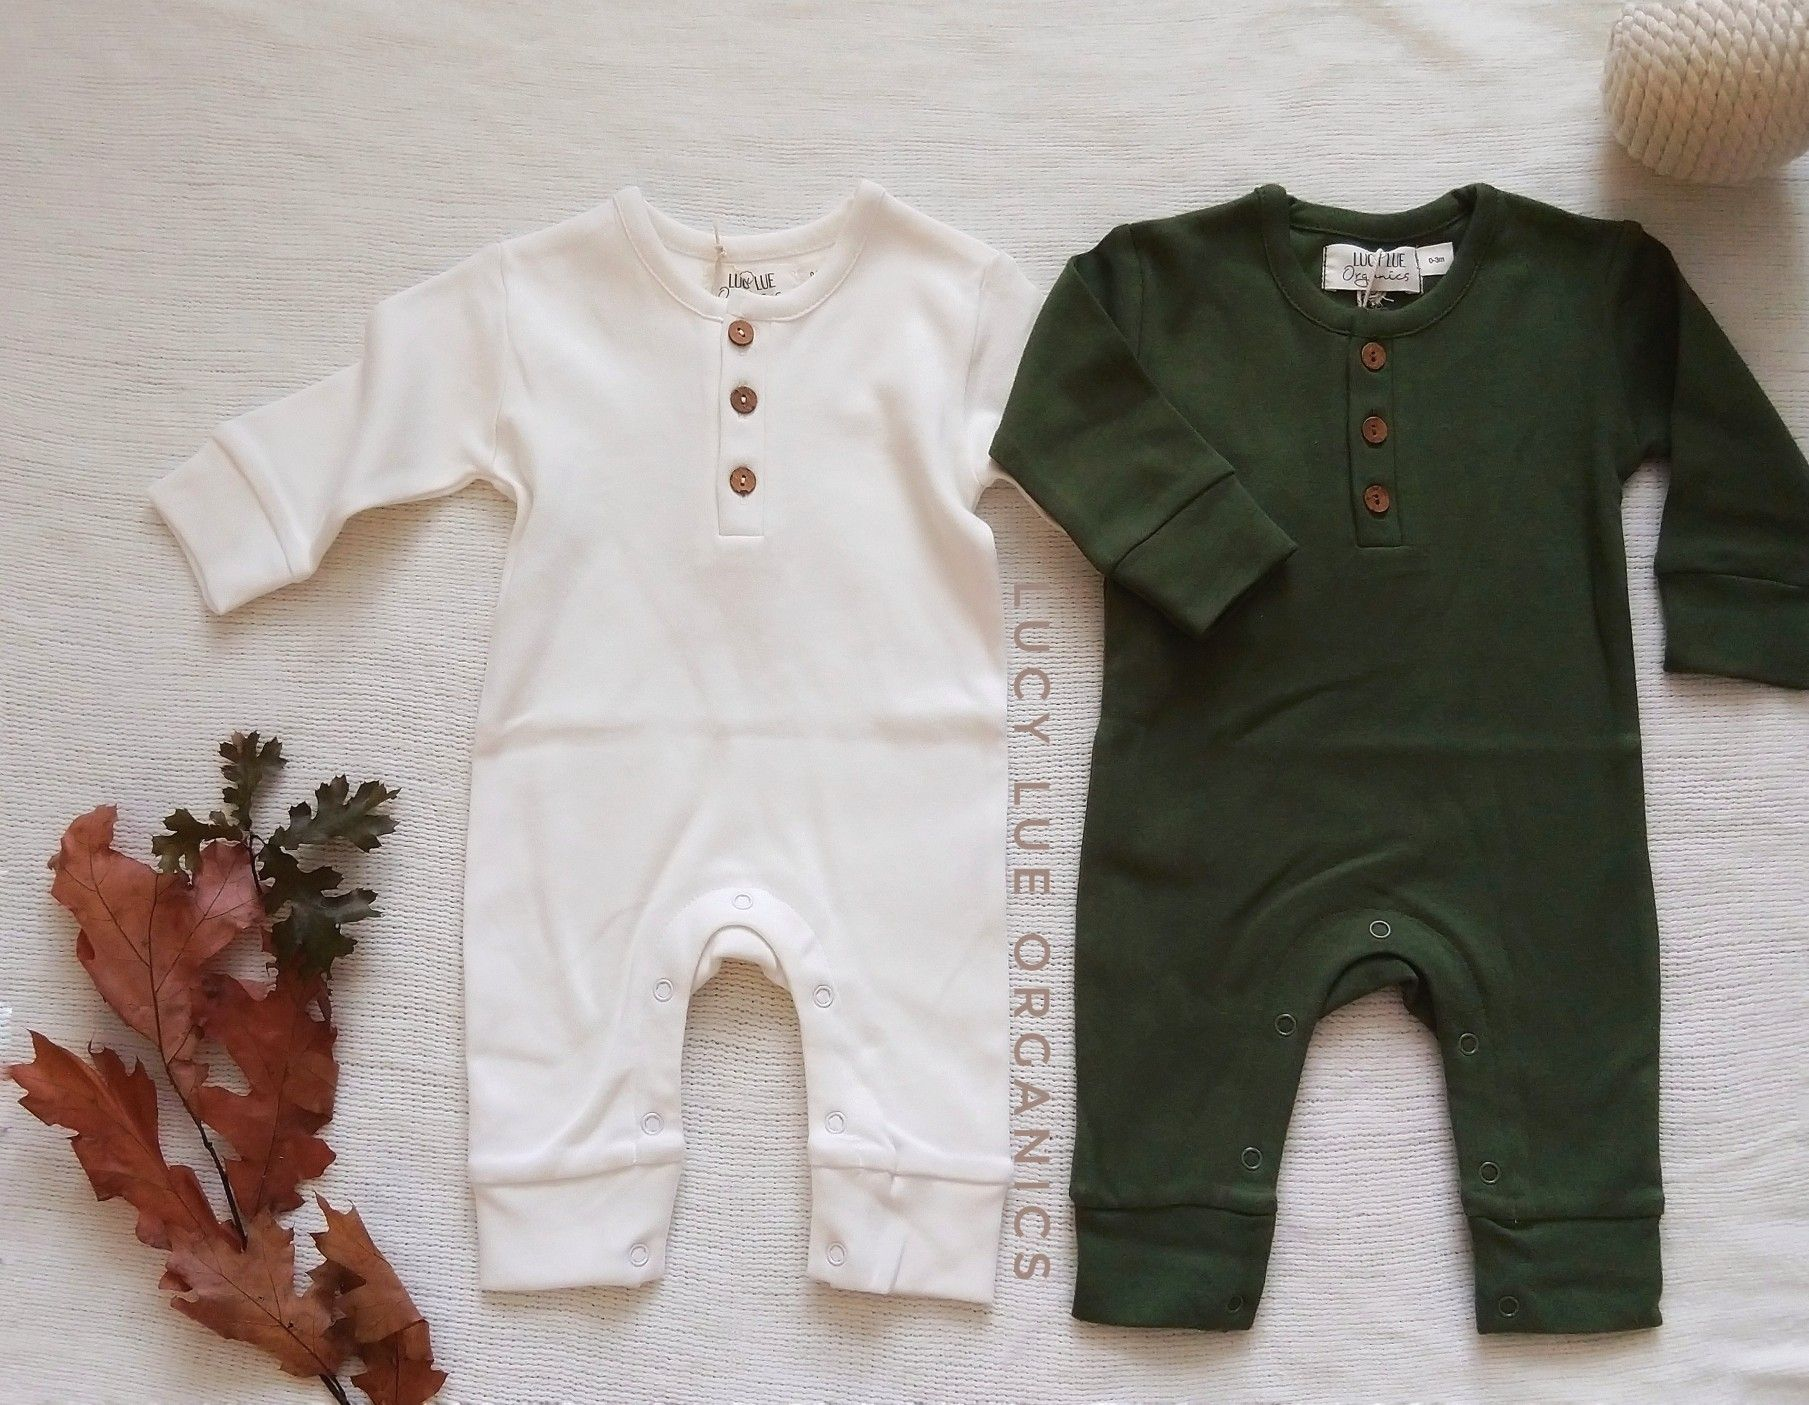 Love at first sight! For the best in modern organic baby clothes